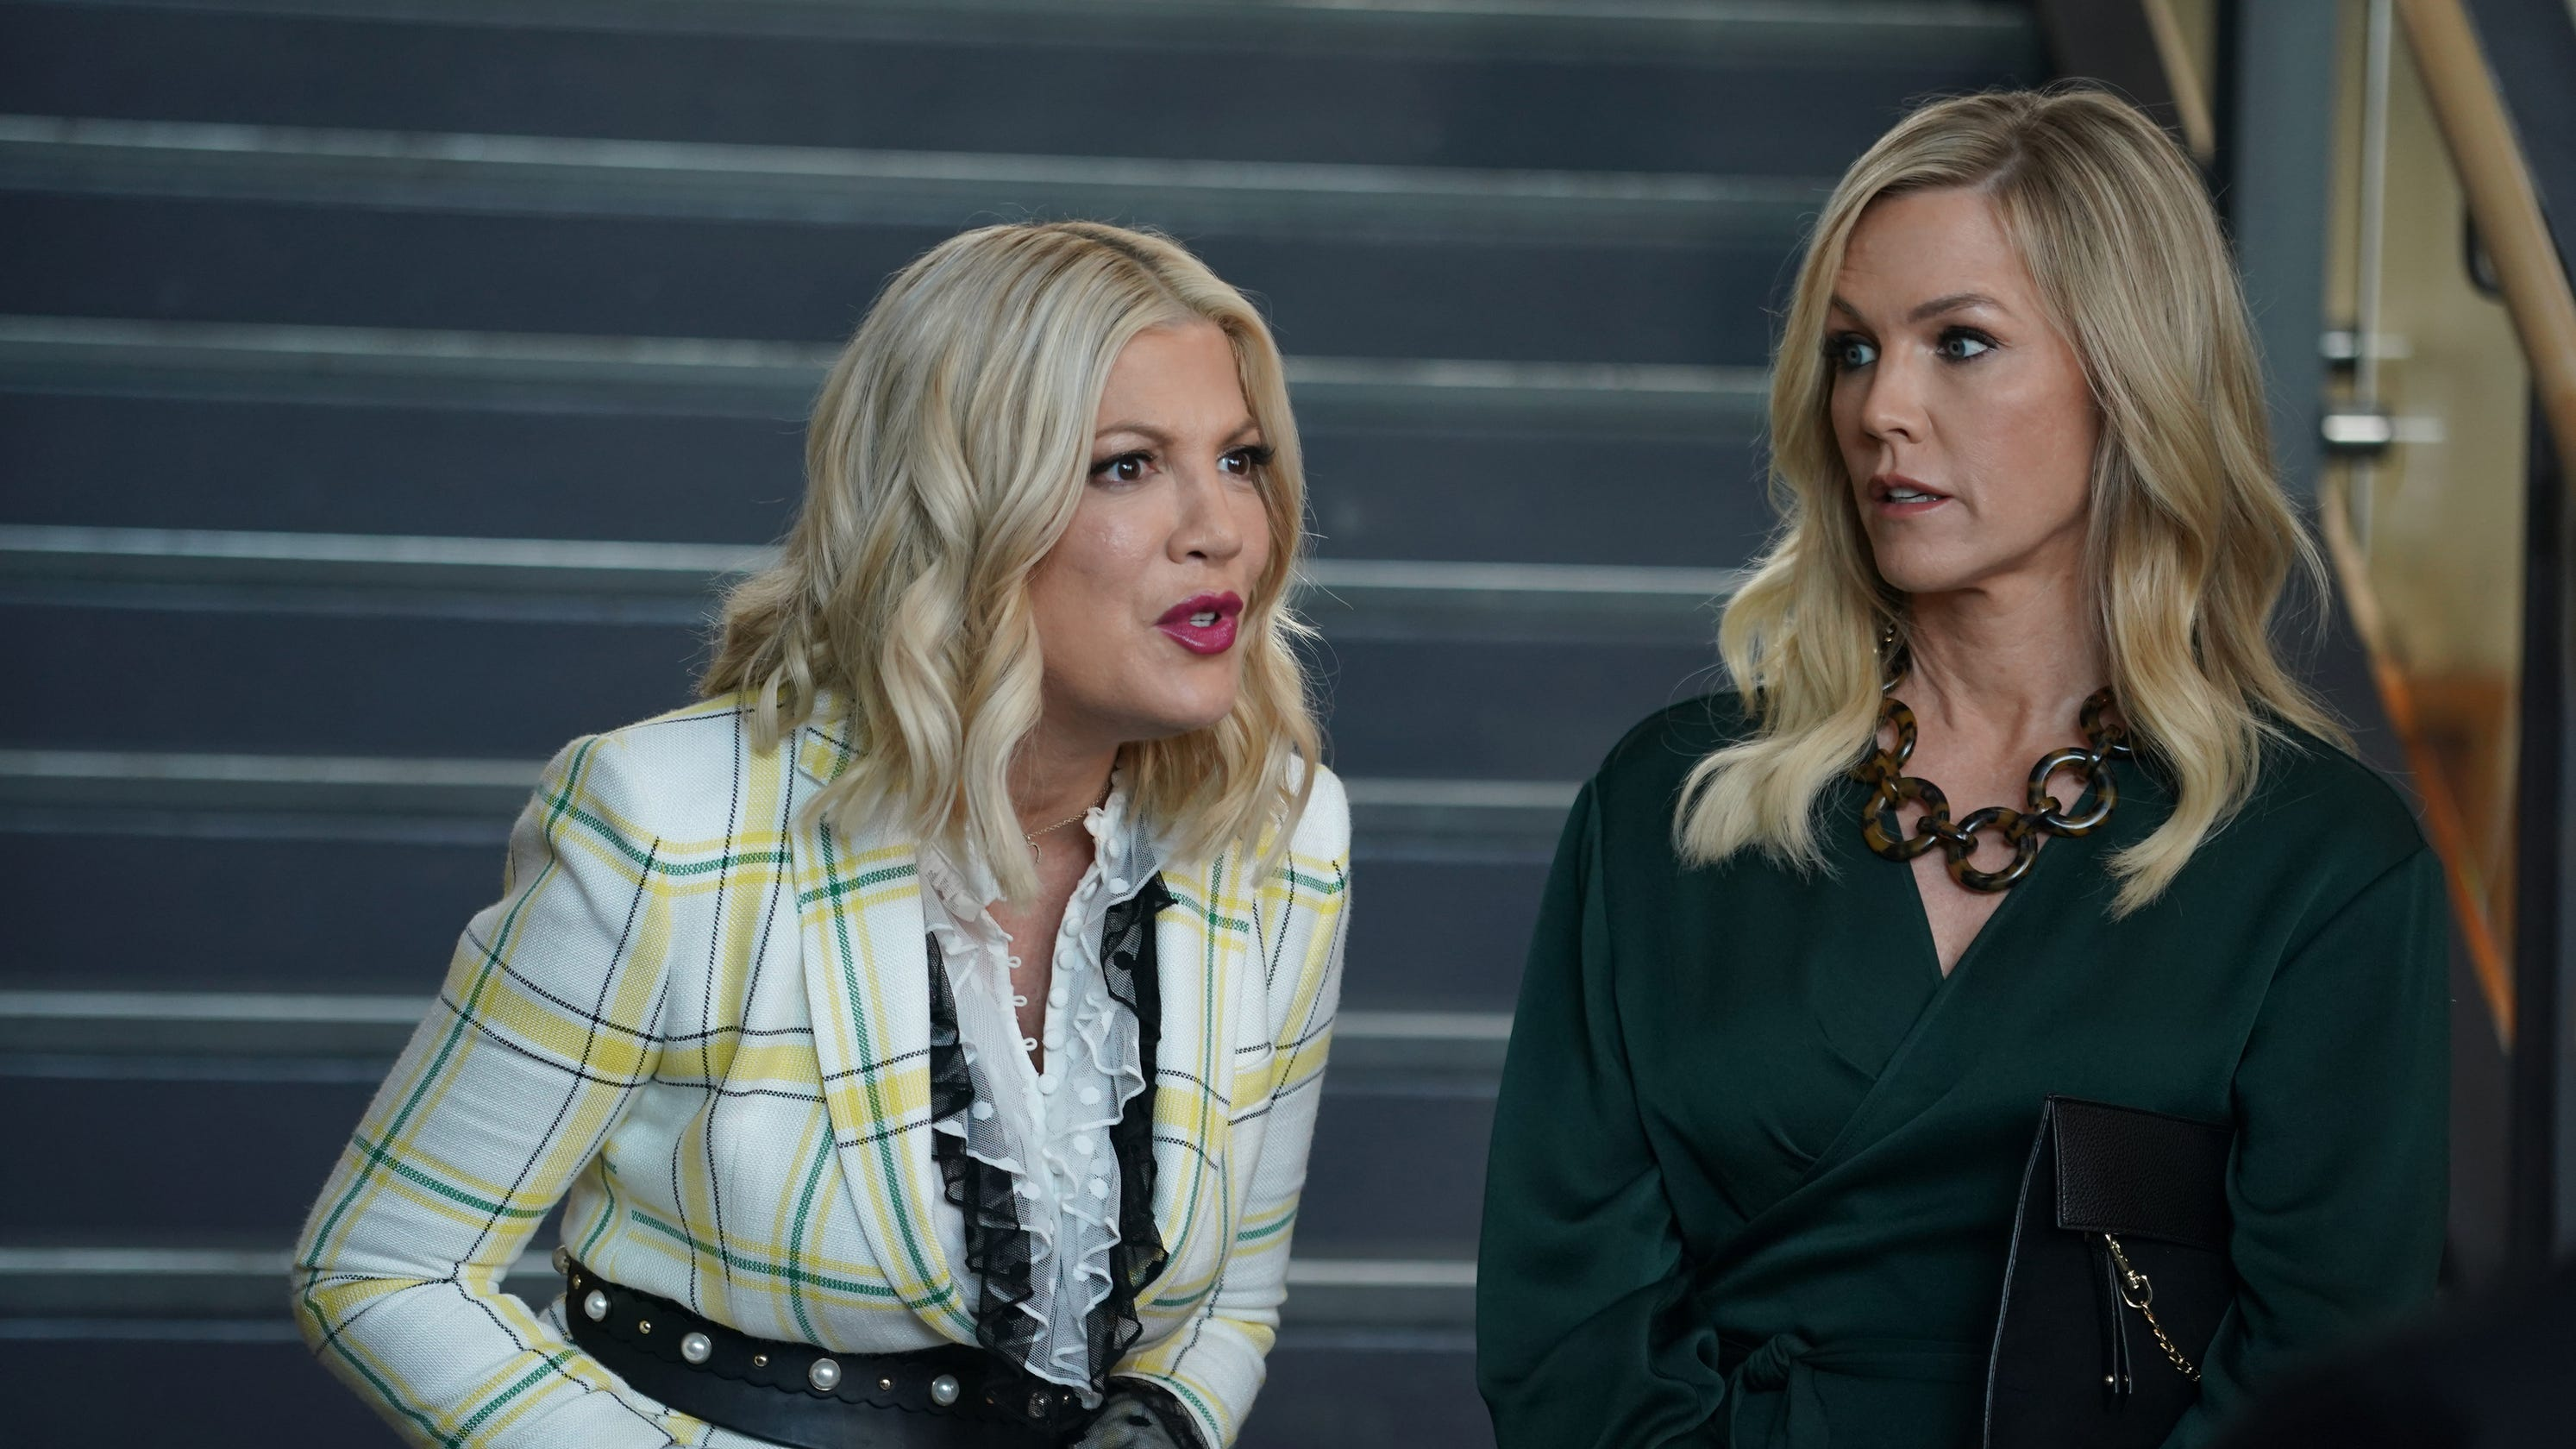 BH 90210' recap: Season 1, Episode 2, 'The Pitch'